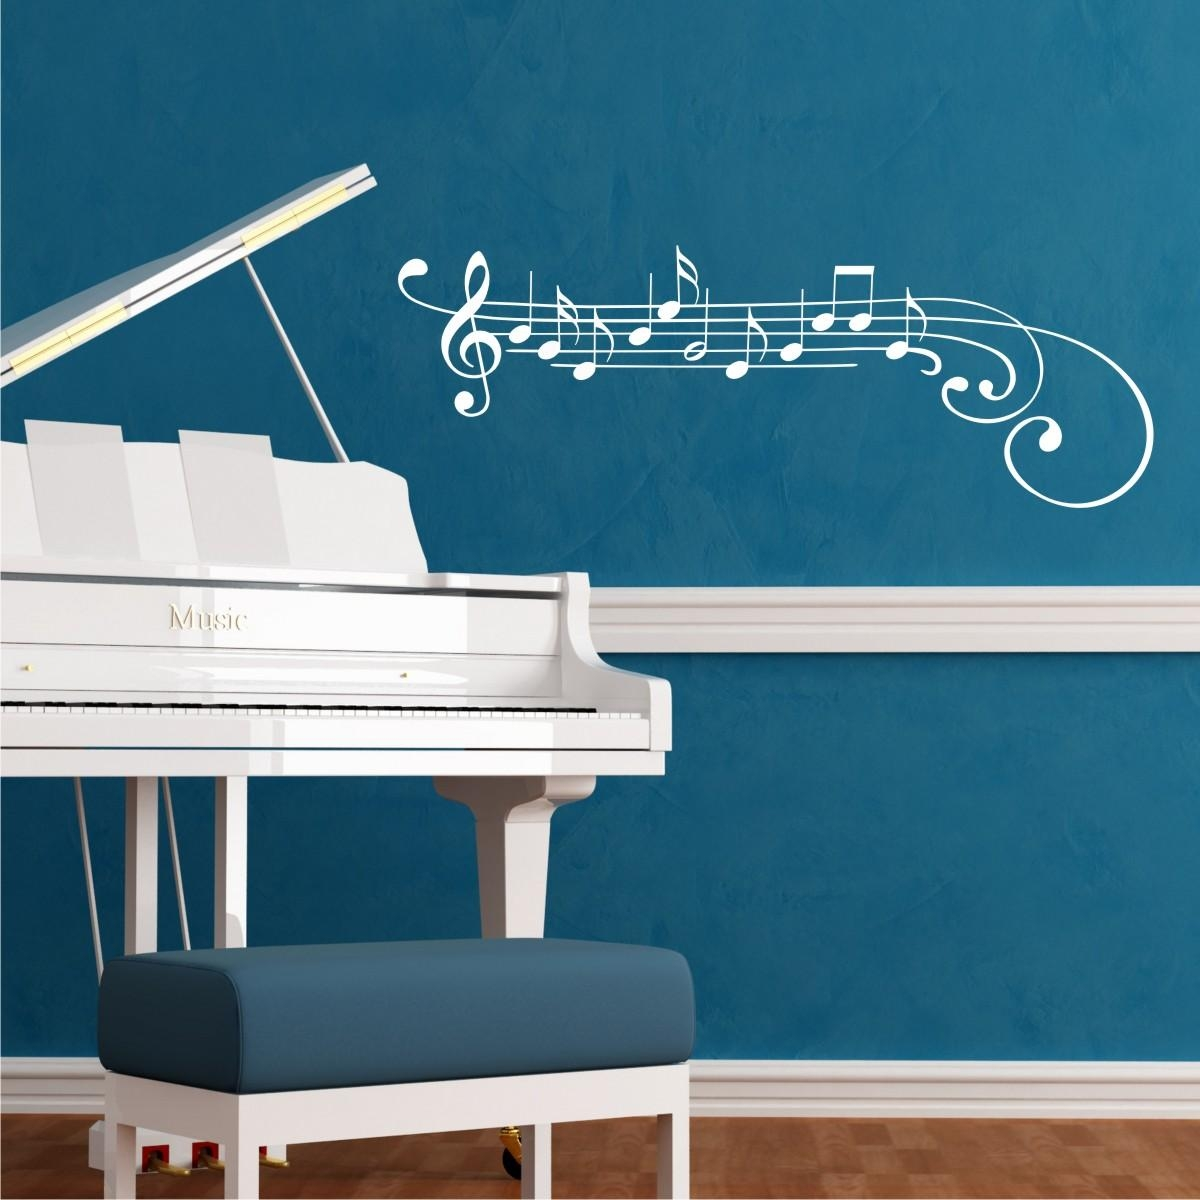 Treble Clef And Notes Wall Quotes™ Wall Art Decal | Wallquotes For Music Notes Wall Art Decals (View 17 of 20)